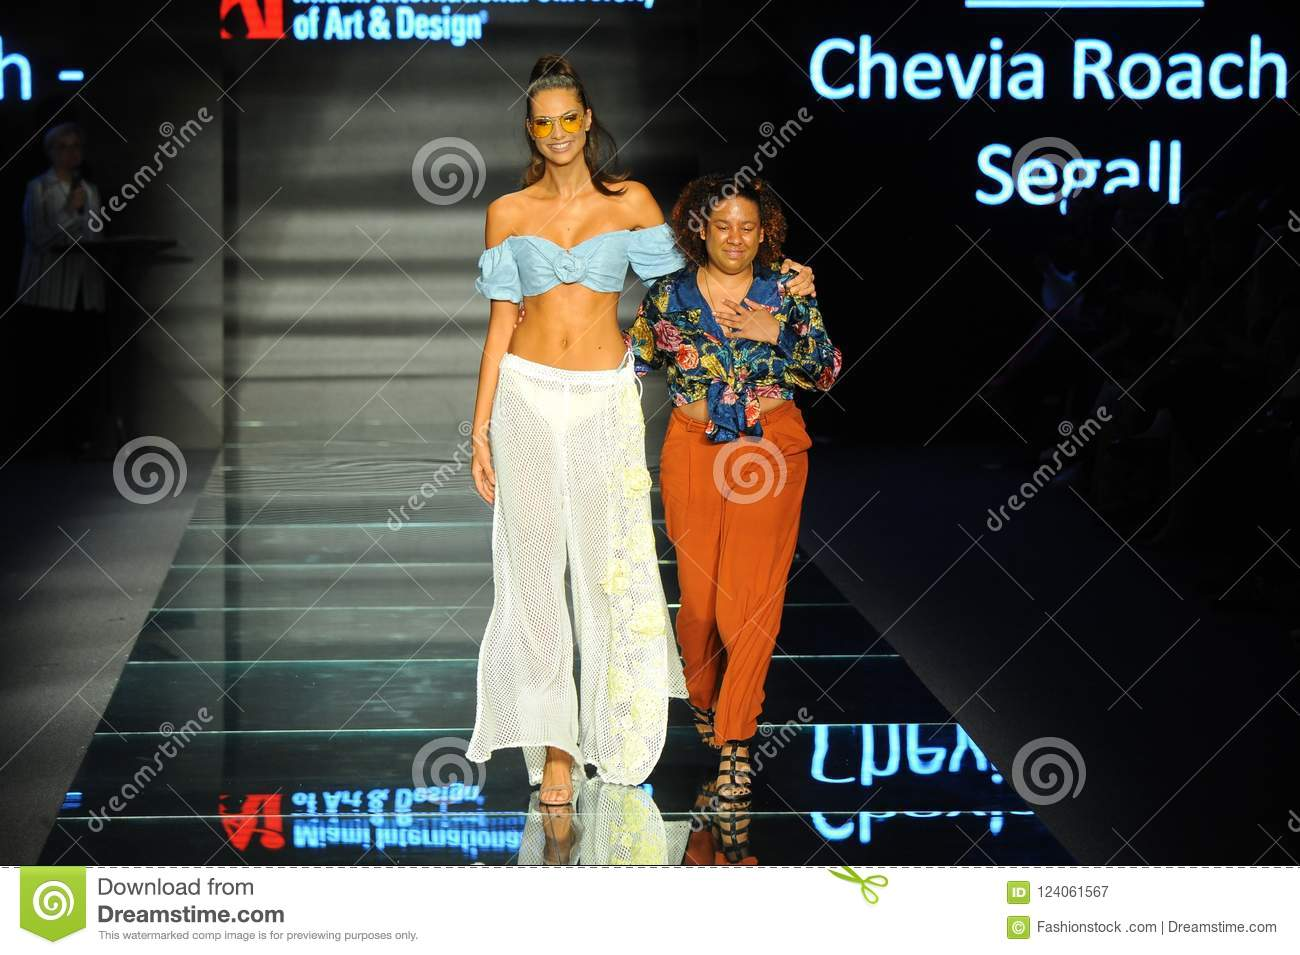 Chevia Roach Segall Walks Runway During Fashion Show Presented By Designers Of Miami International University Of Art And Design Editorial Photography Image Of Florida Design 124061567